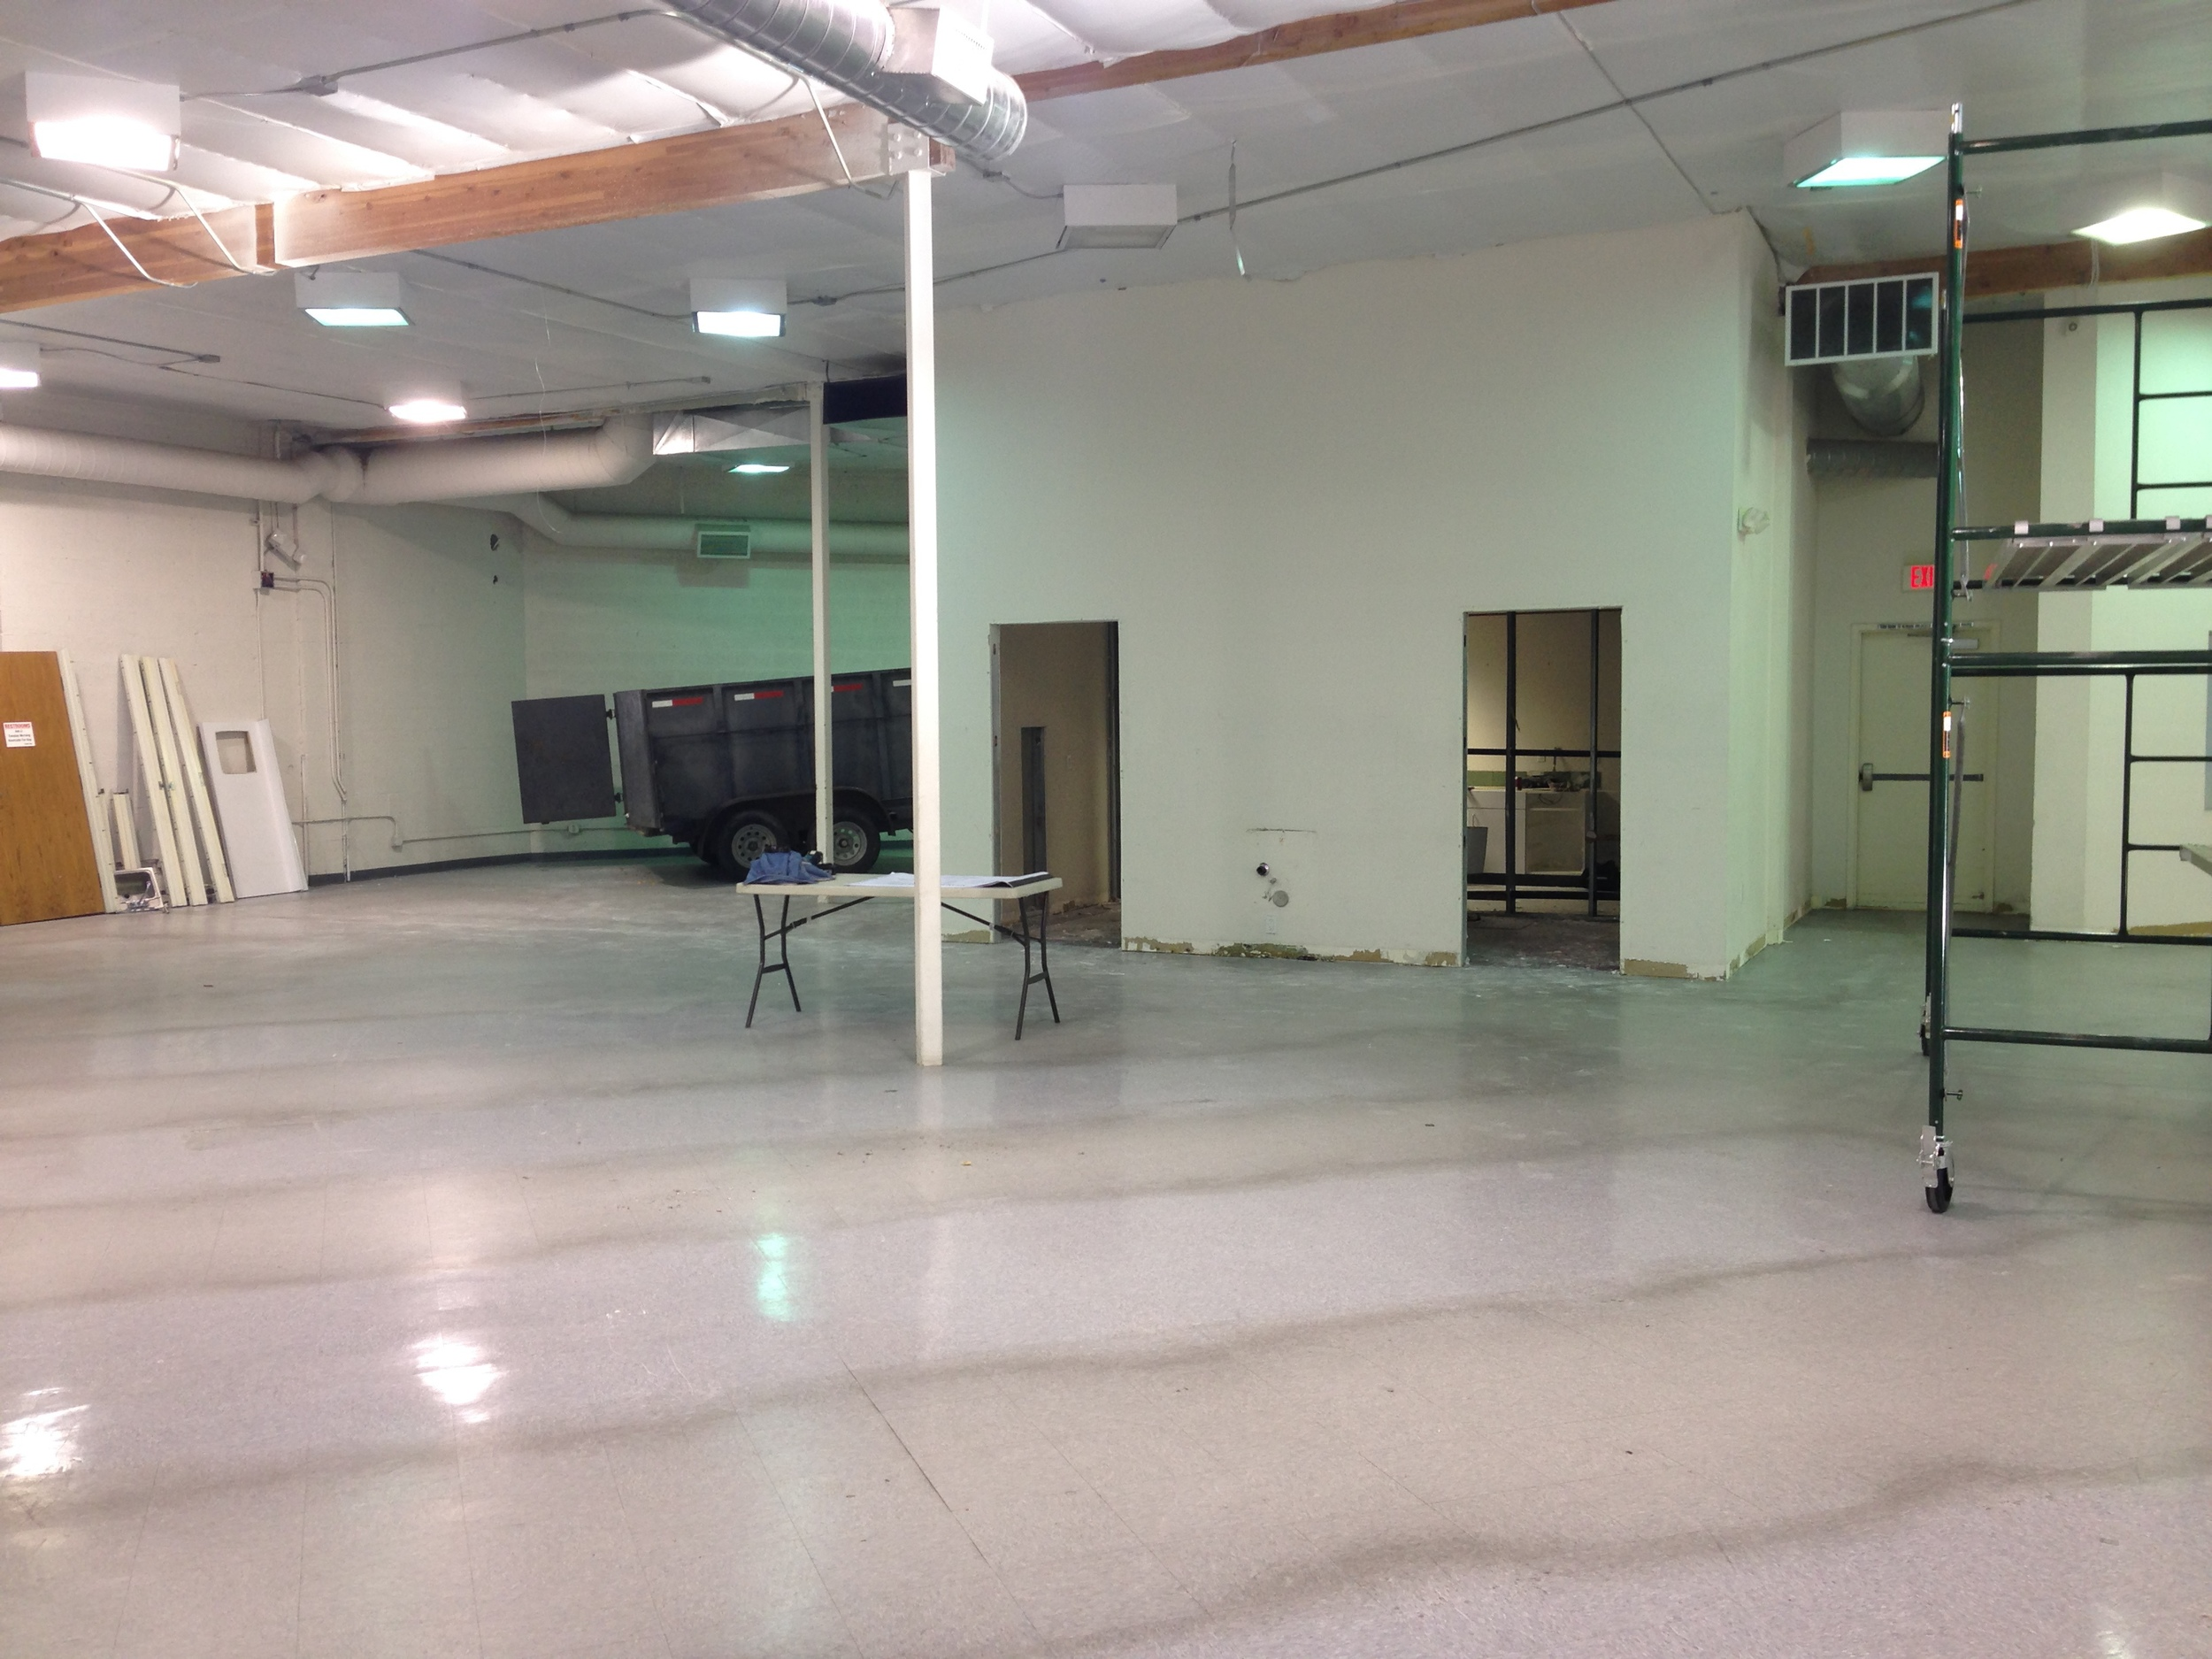 Interior being prepped for construction.